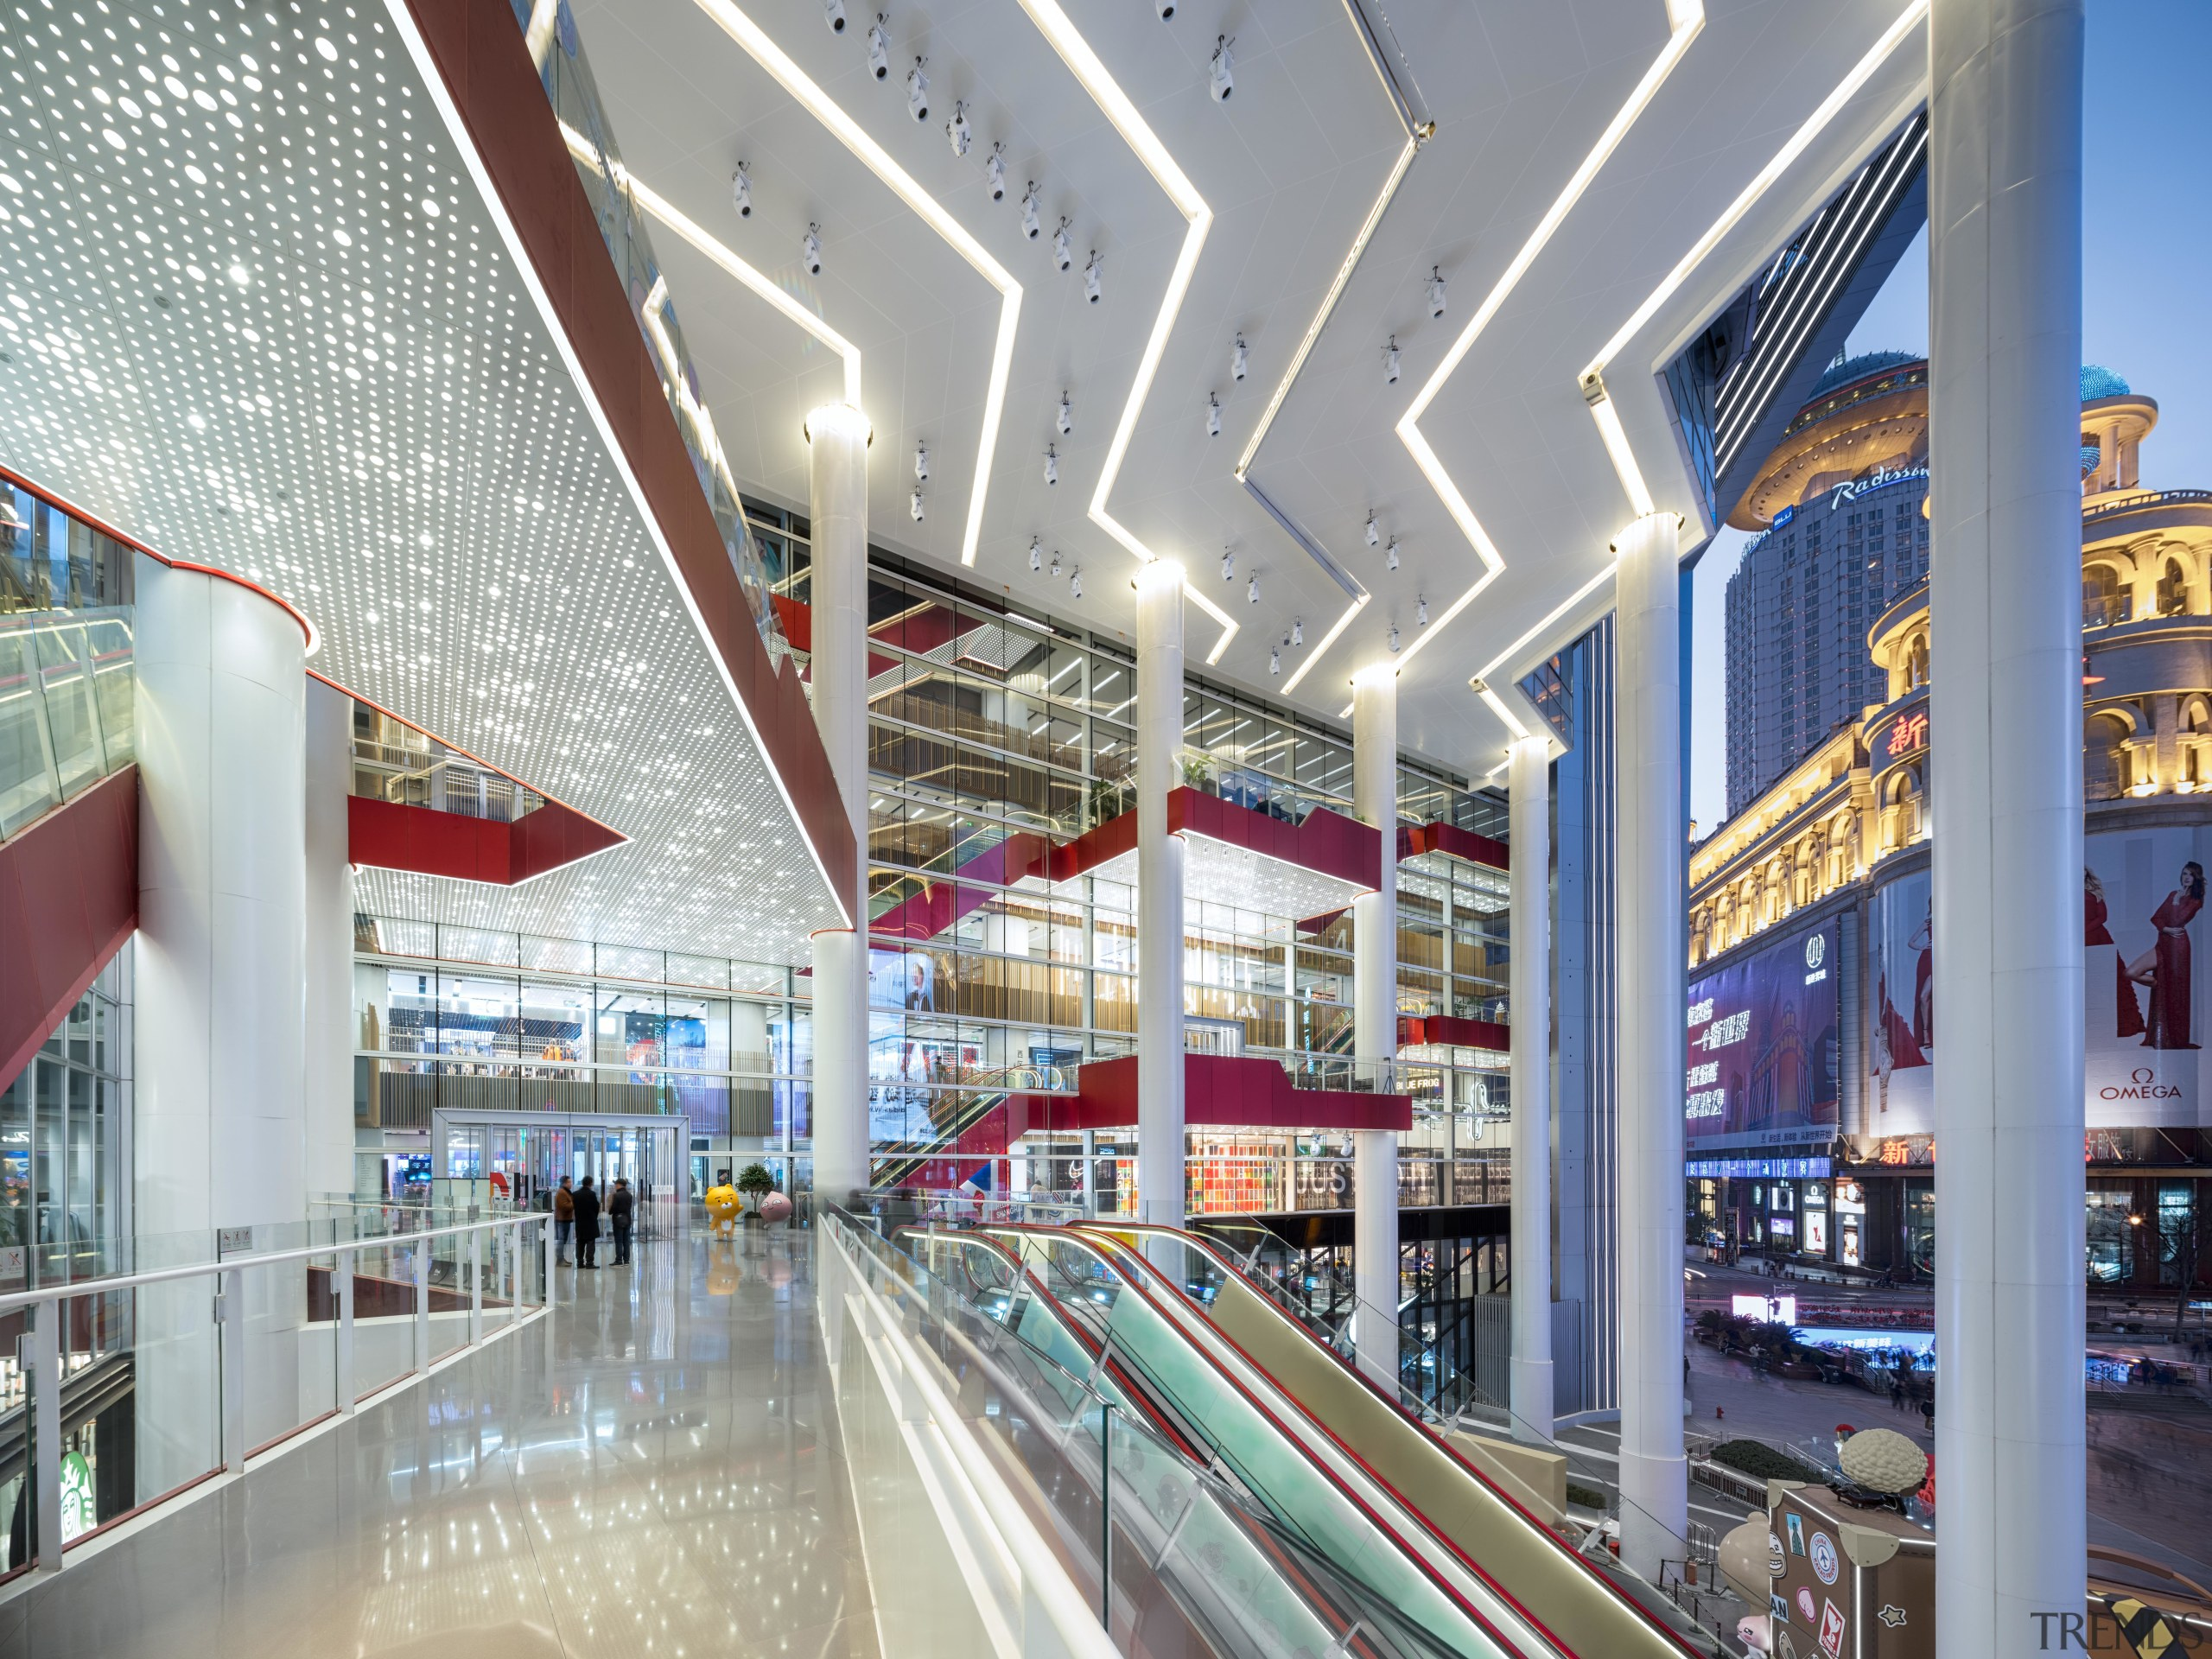 Shimao Festival City mall now has a connected architecture, building, ceiling, commercial building, interior design, lobby, metropolitan area, mixed-use, real estate, retail, shopping mall, gray